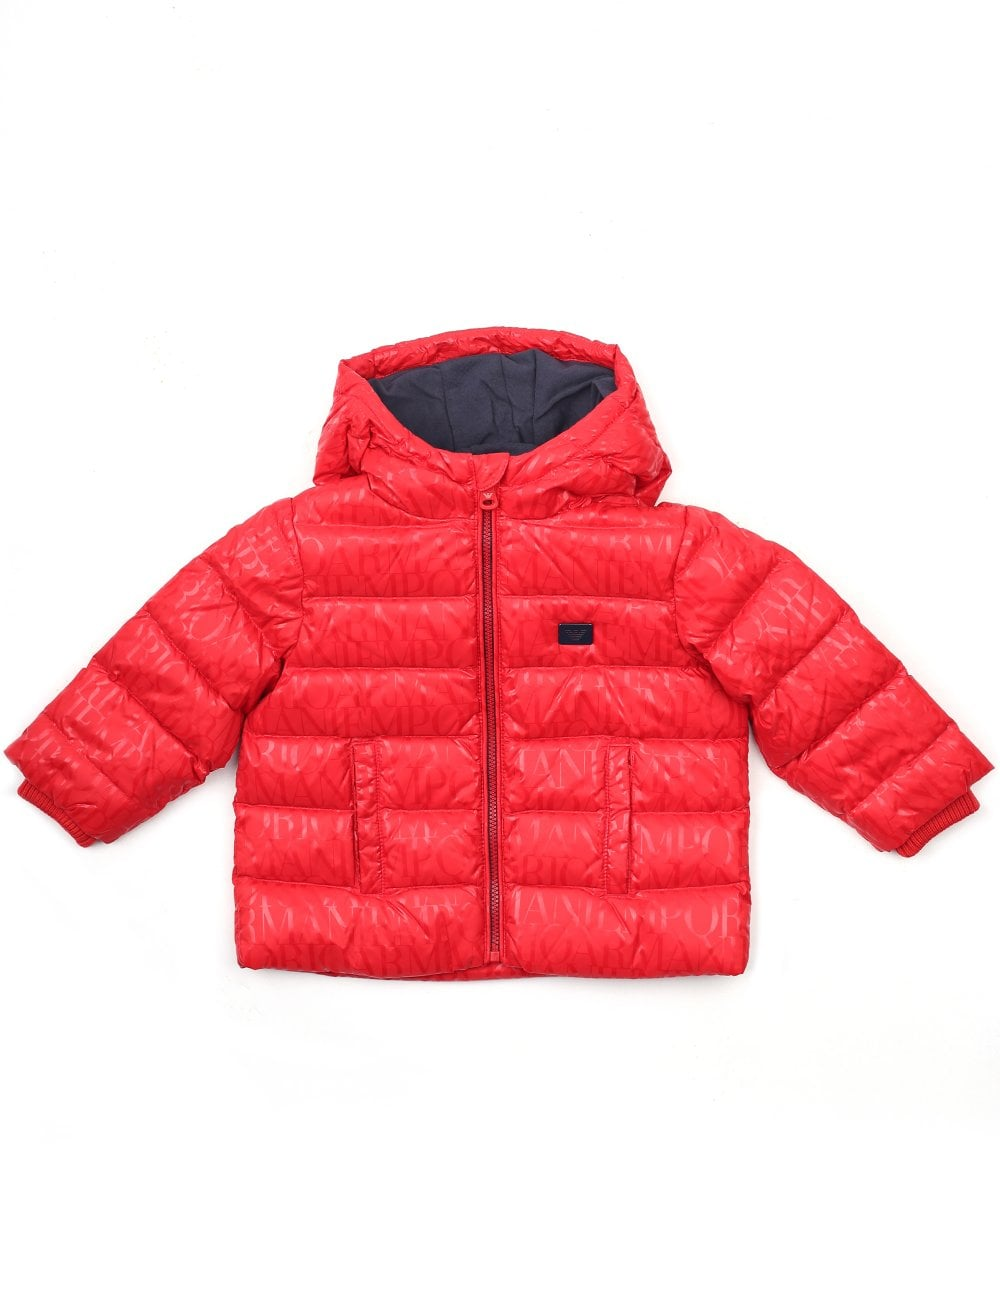 49110c6c3 Armani Baby Boys Zip Through Hooded Down Jacket